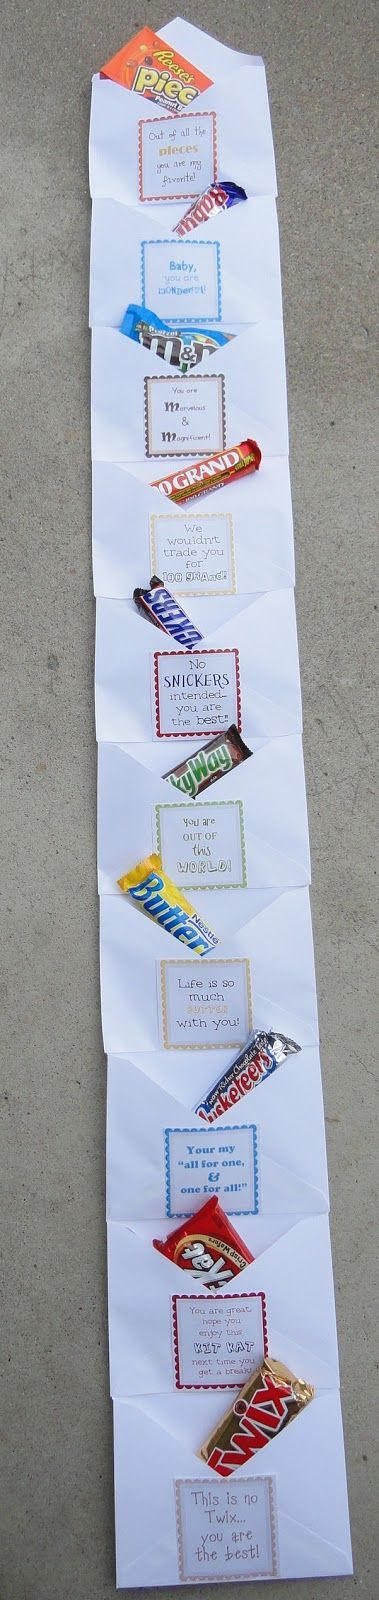 We Love Being Moms!: Fun Gift Idea for the One You Love (with printables):